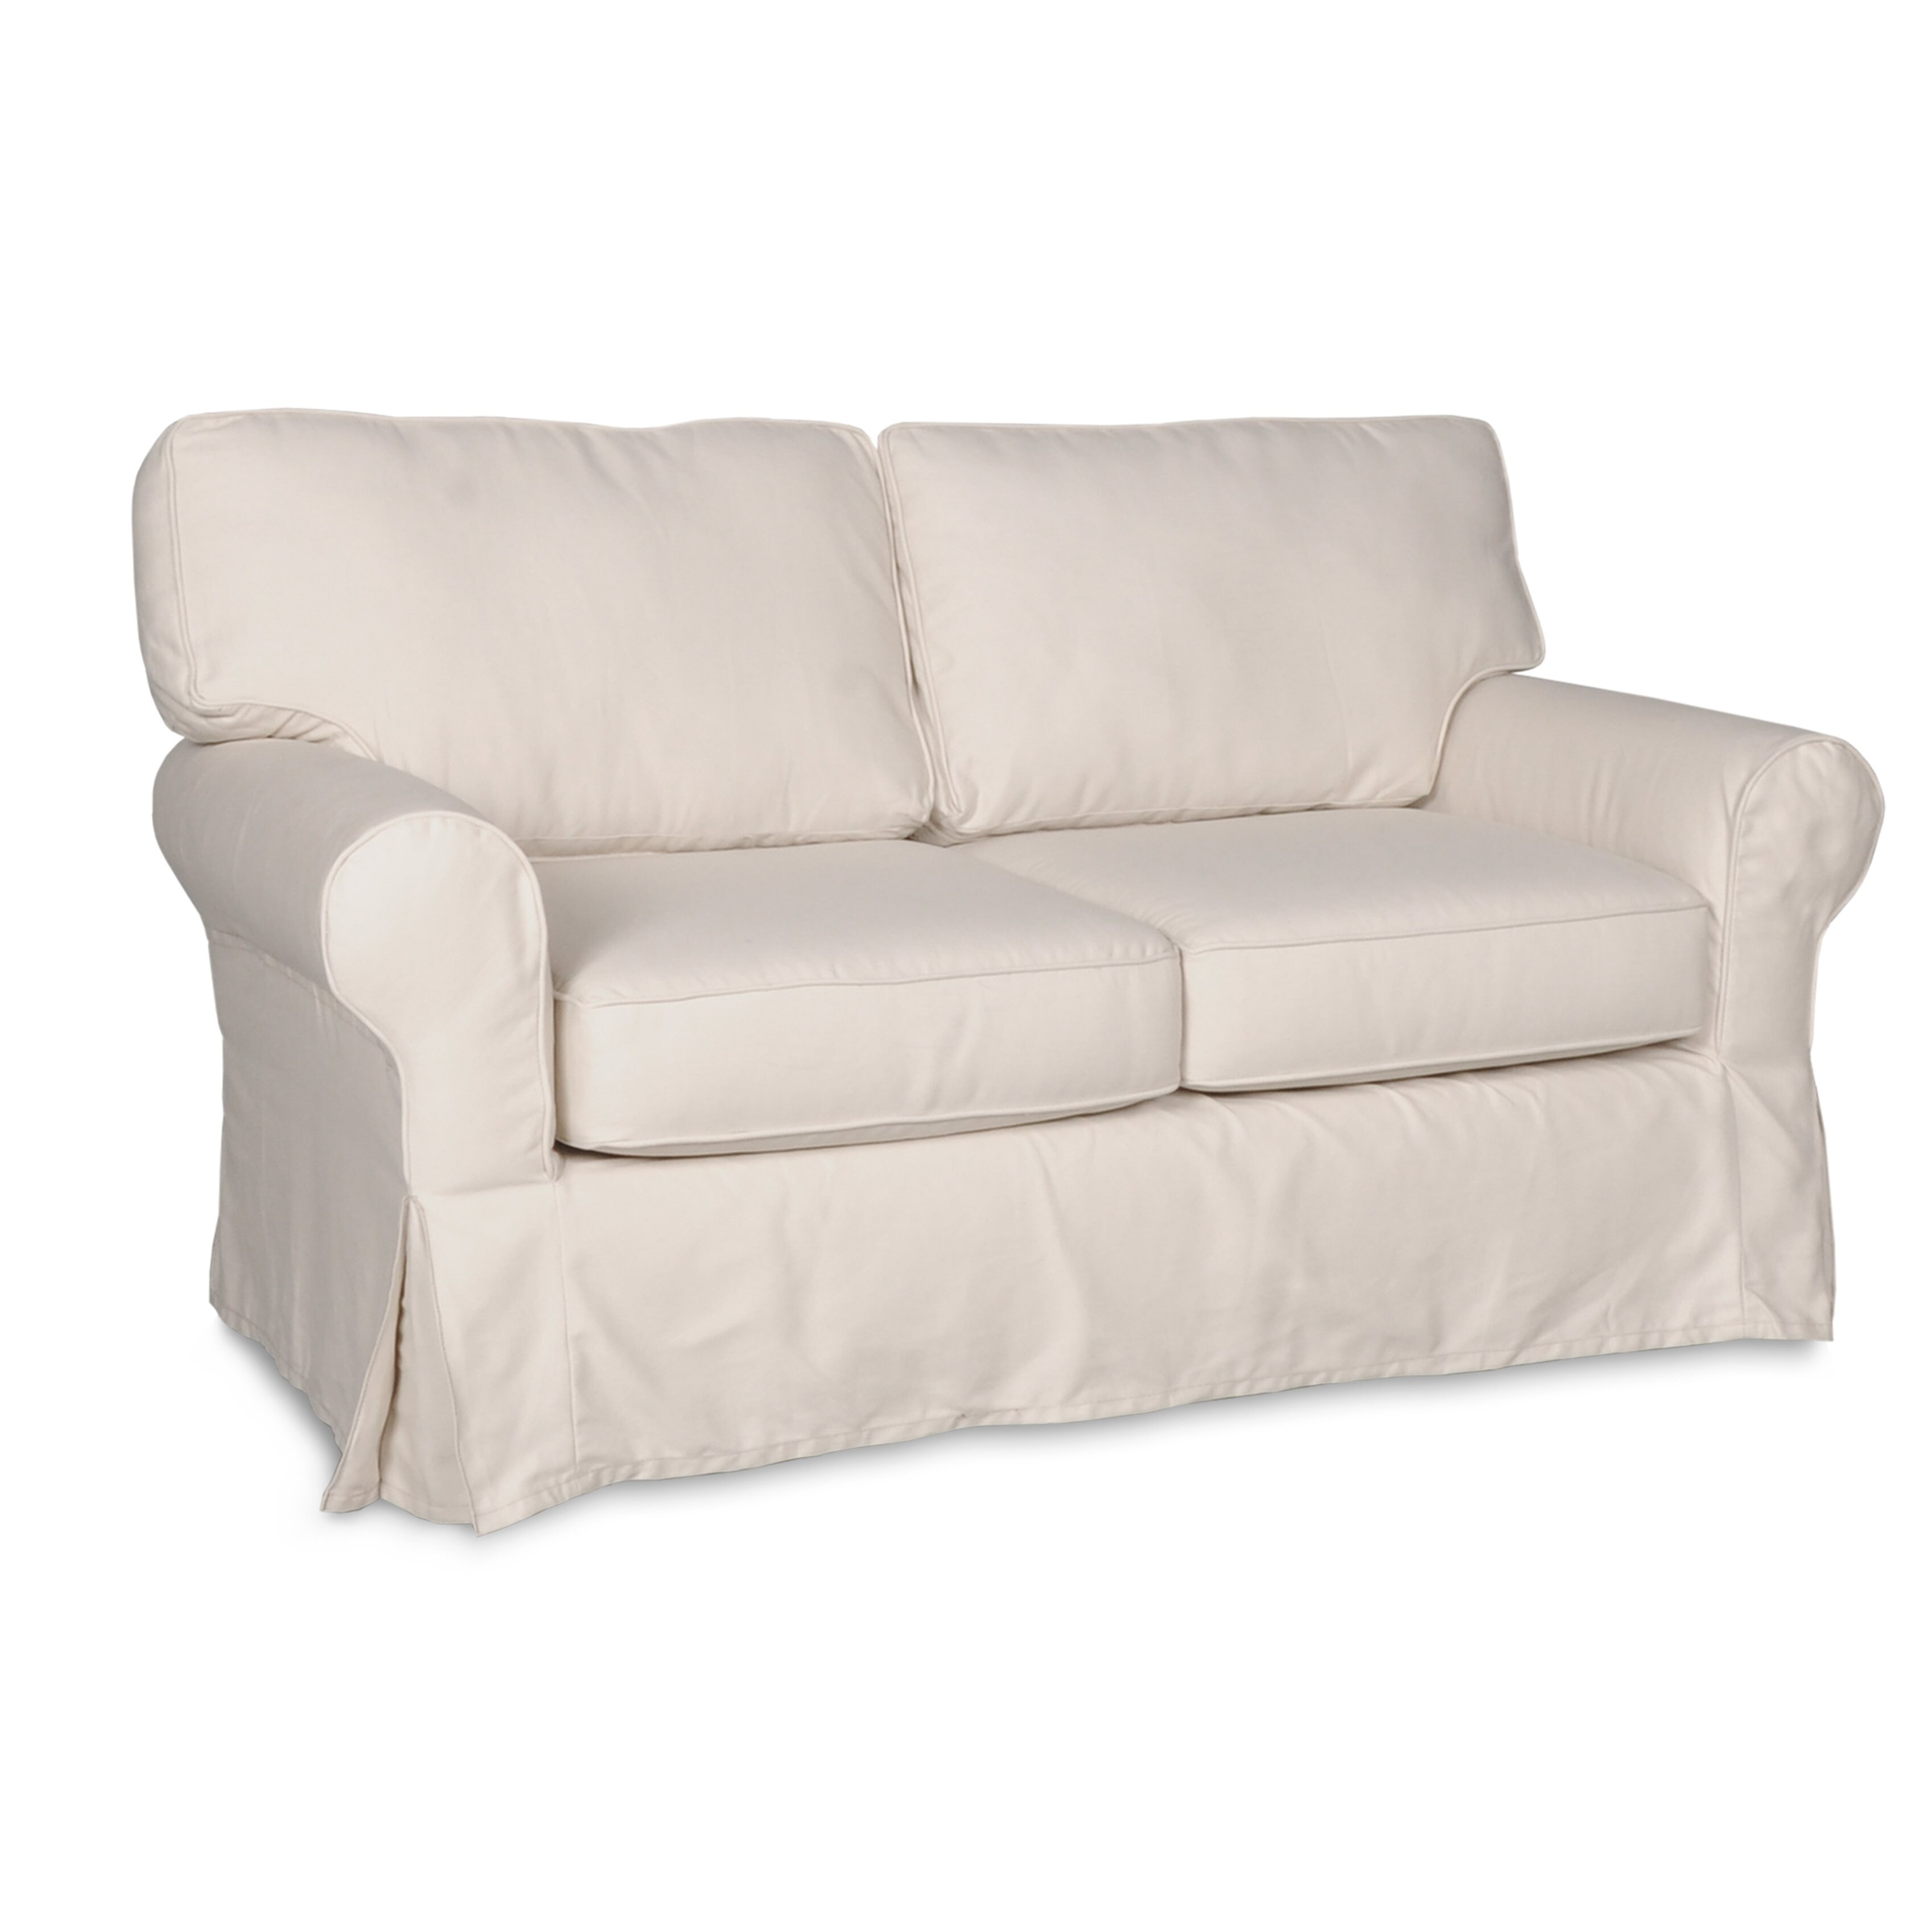 Darby Home Co Loveseat Slipcover Reviews Wayfair